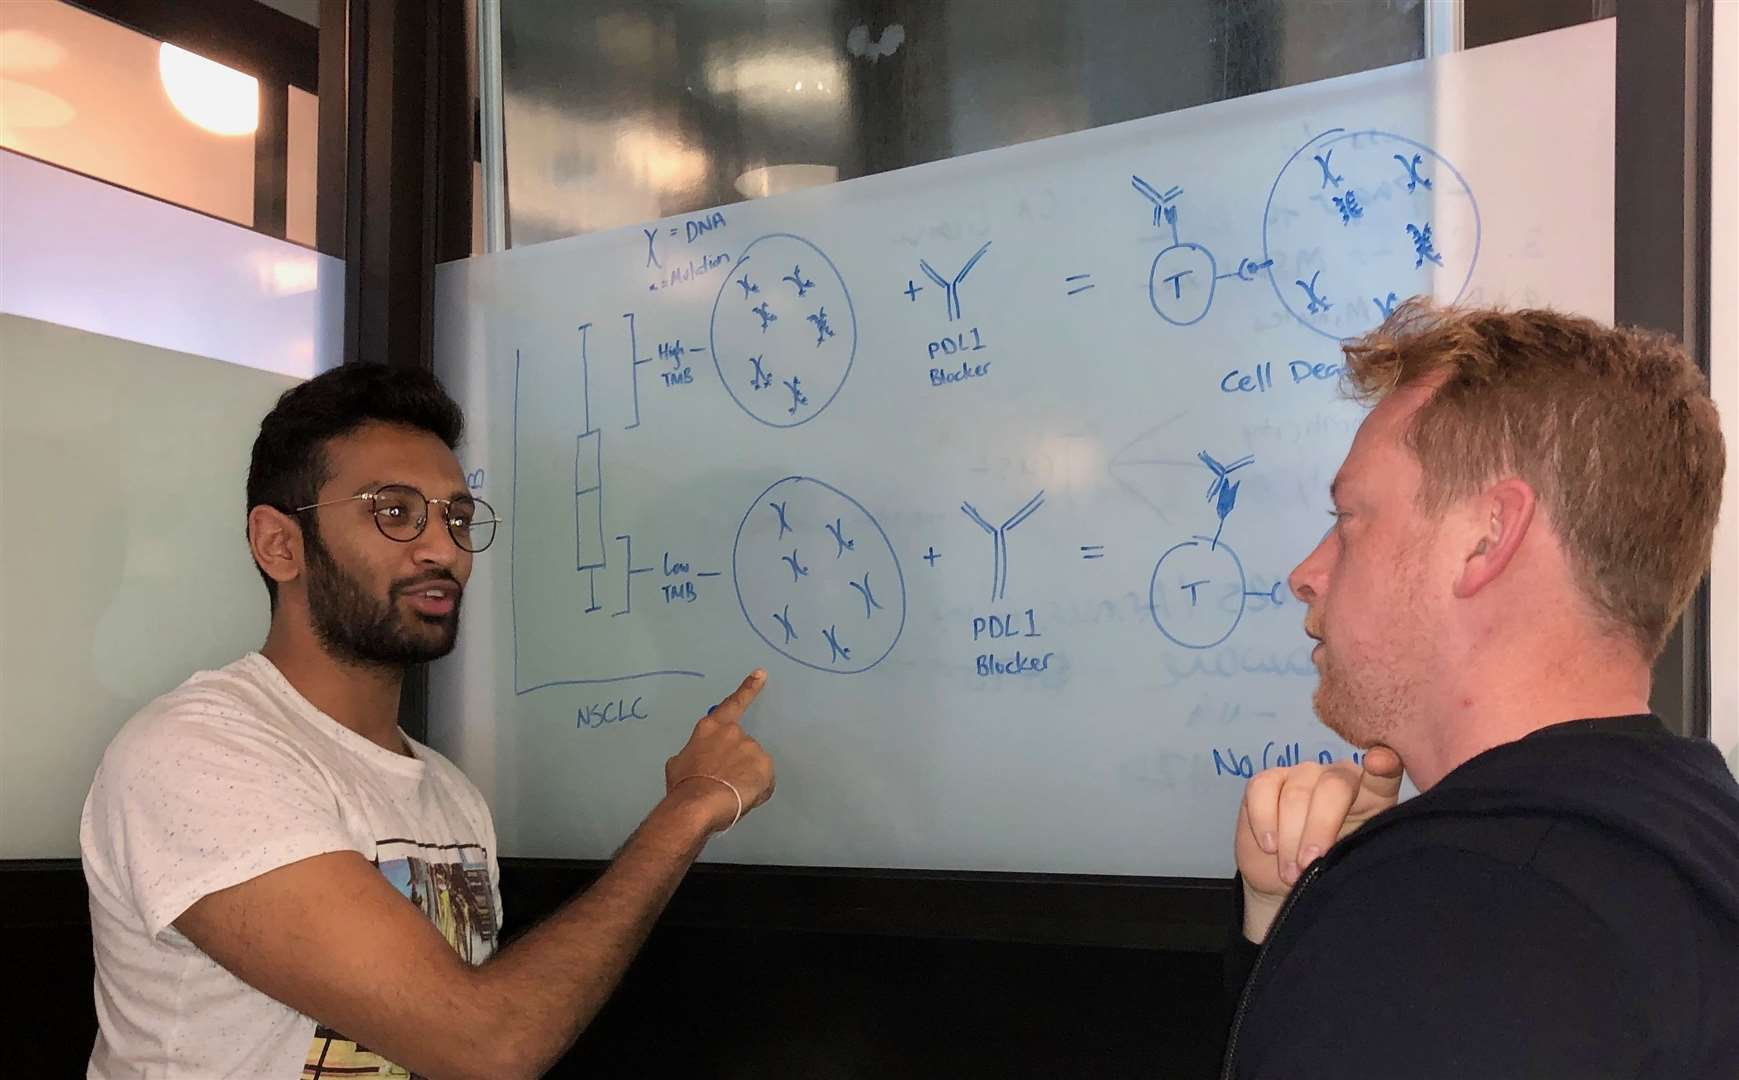 CCG.ai's co-founder and CSO Nirmesh Patel, left, with co-founder and CEO Dr John Cassidy